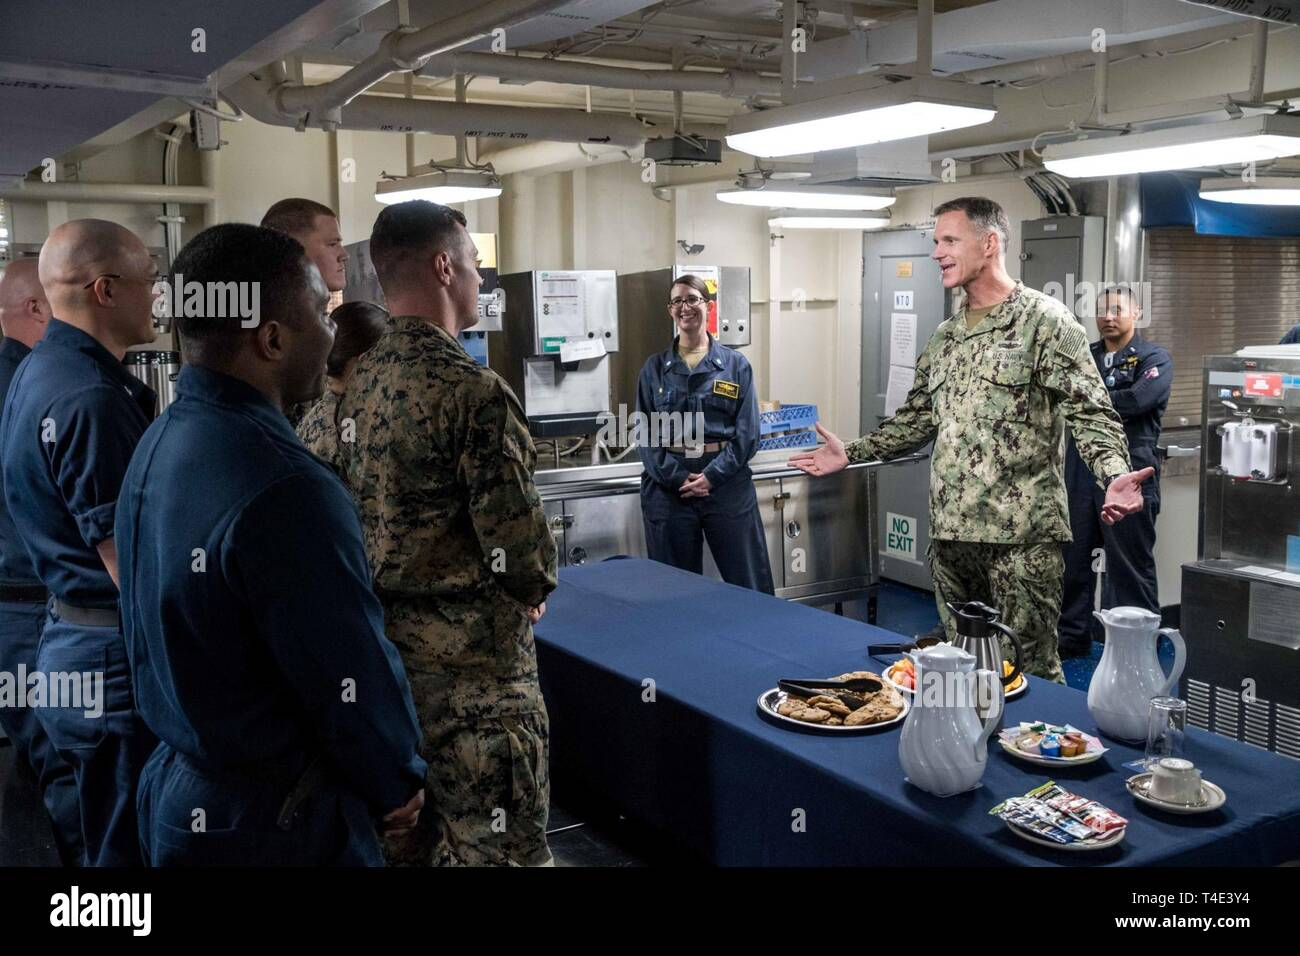 OCEAN (March 27, 2019) Rear Adm  Bill Byrne, Commander, Carrier